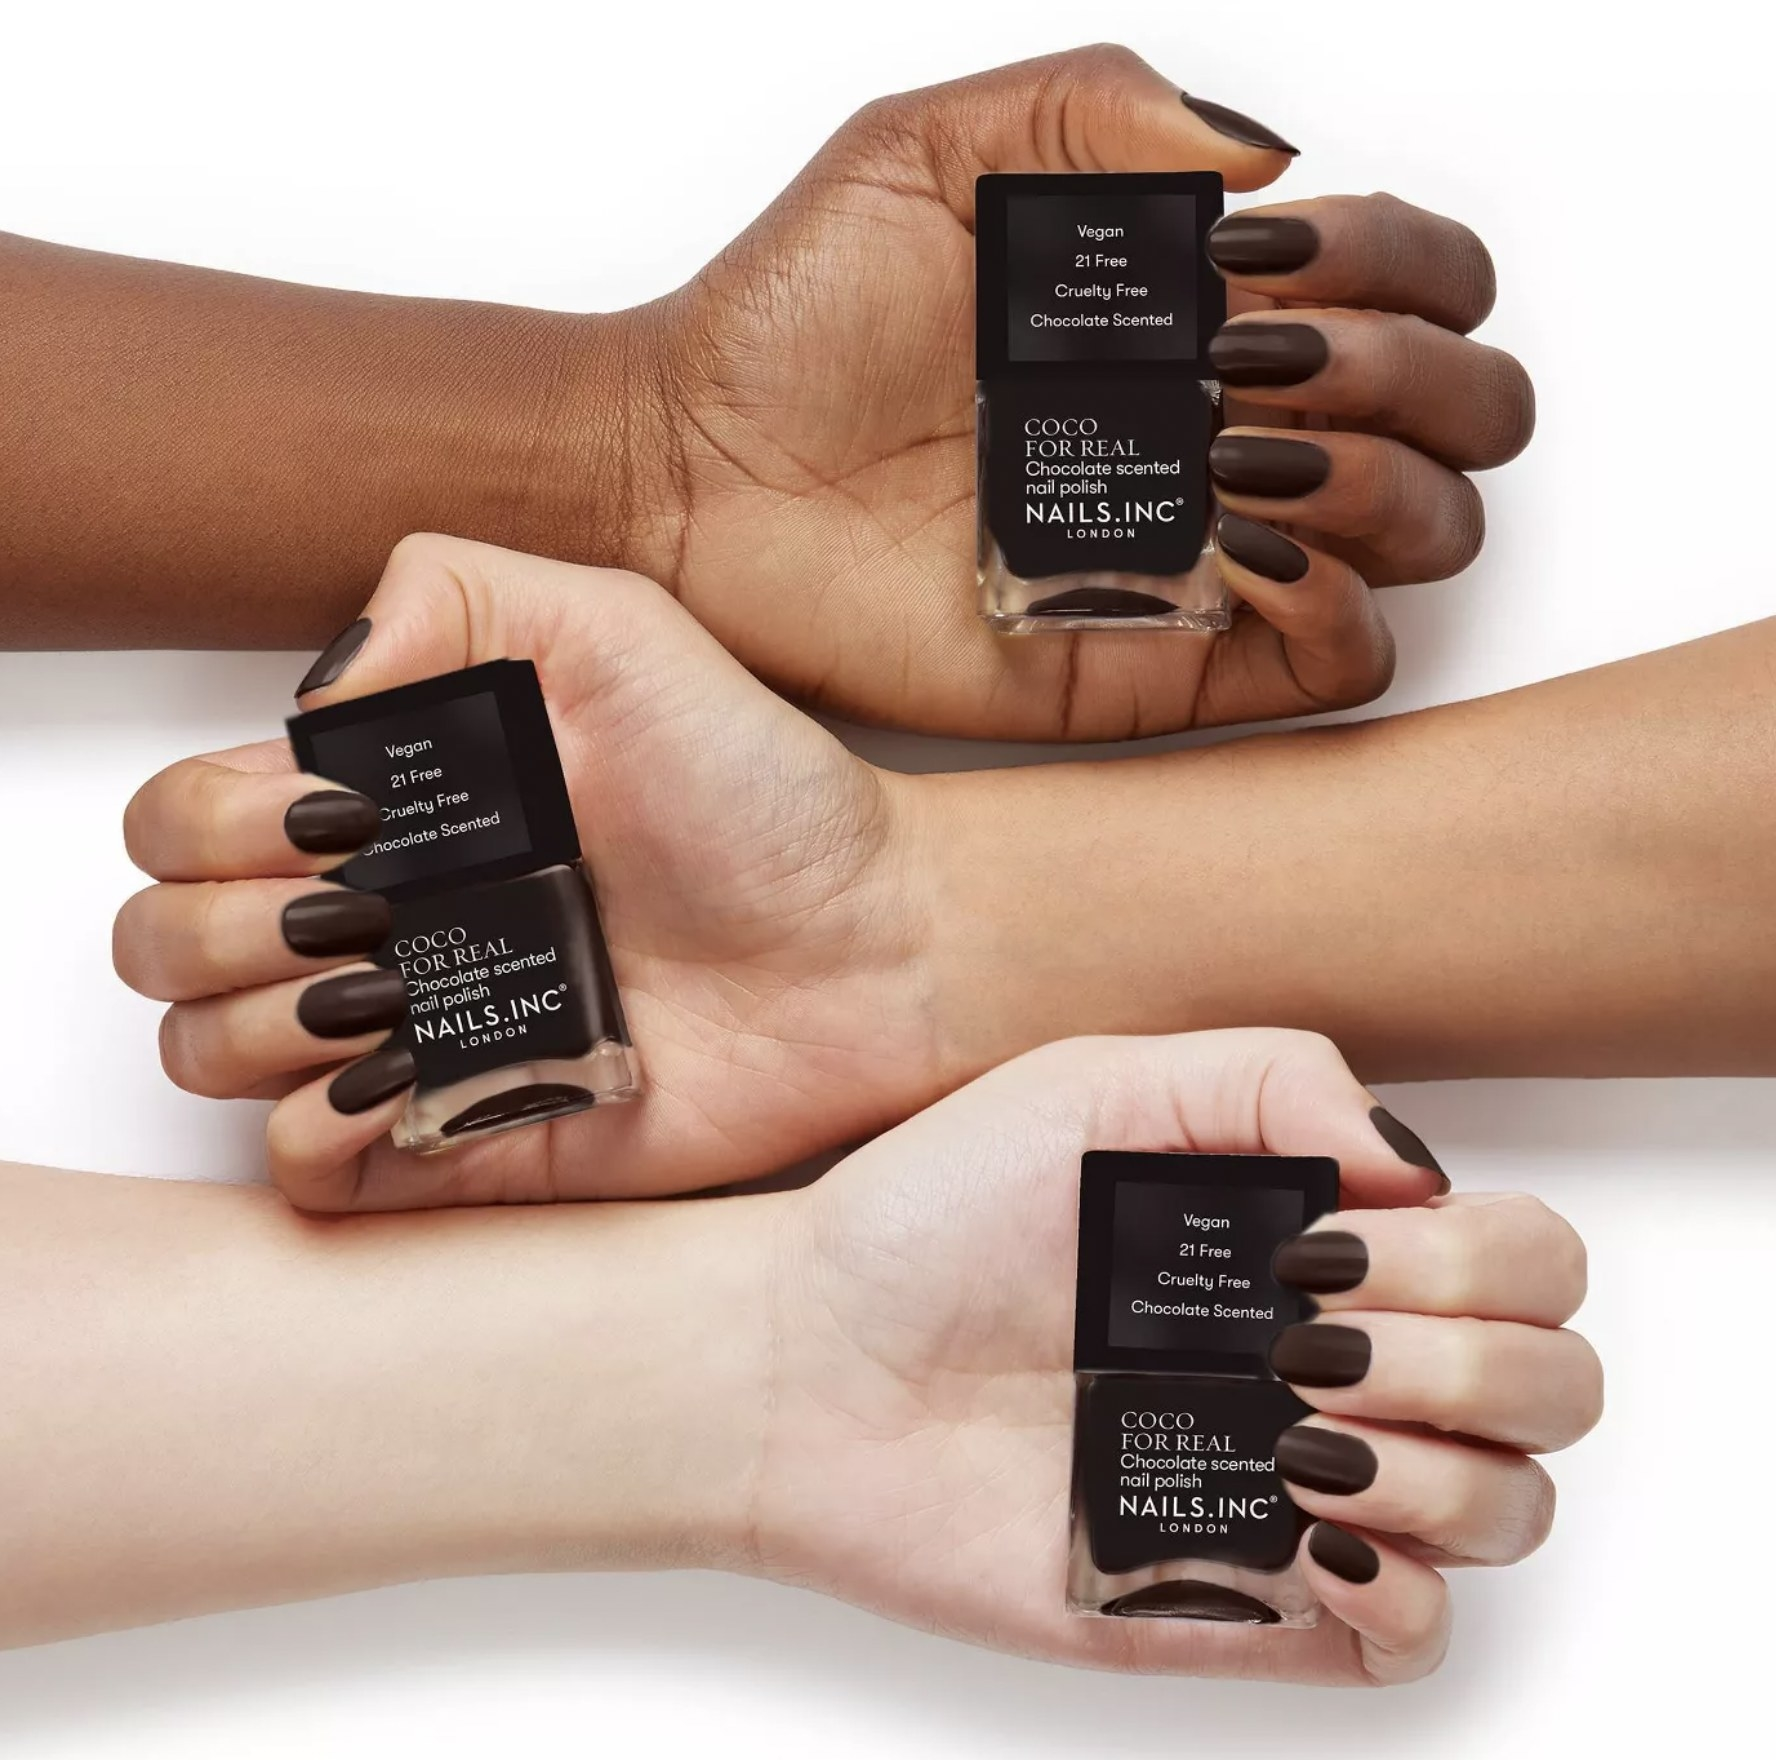 Three models hands holding Coco for real polish